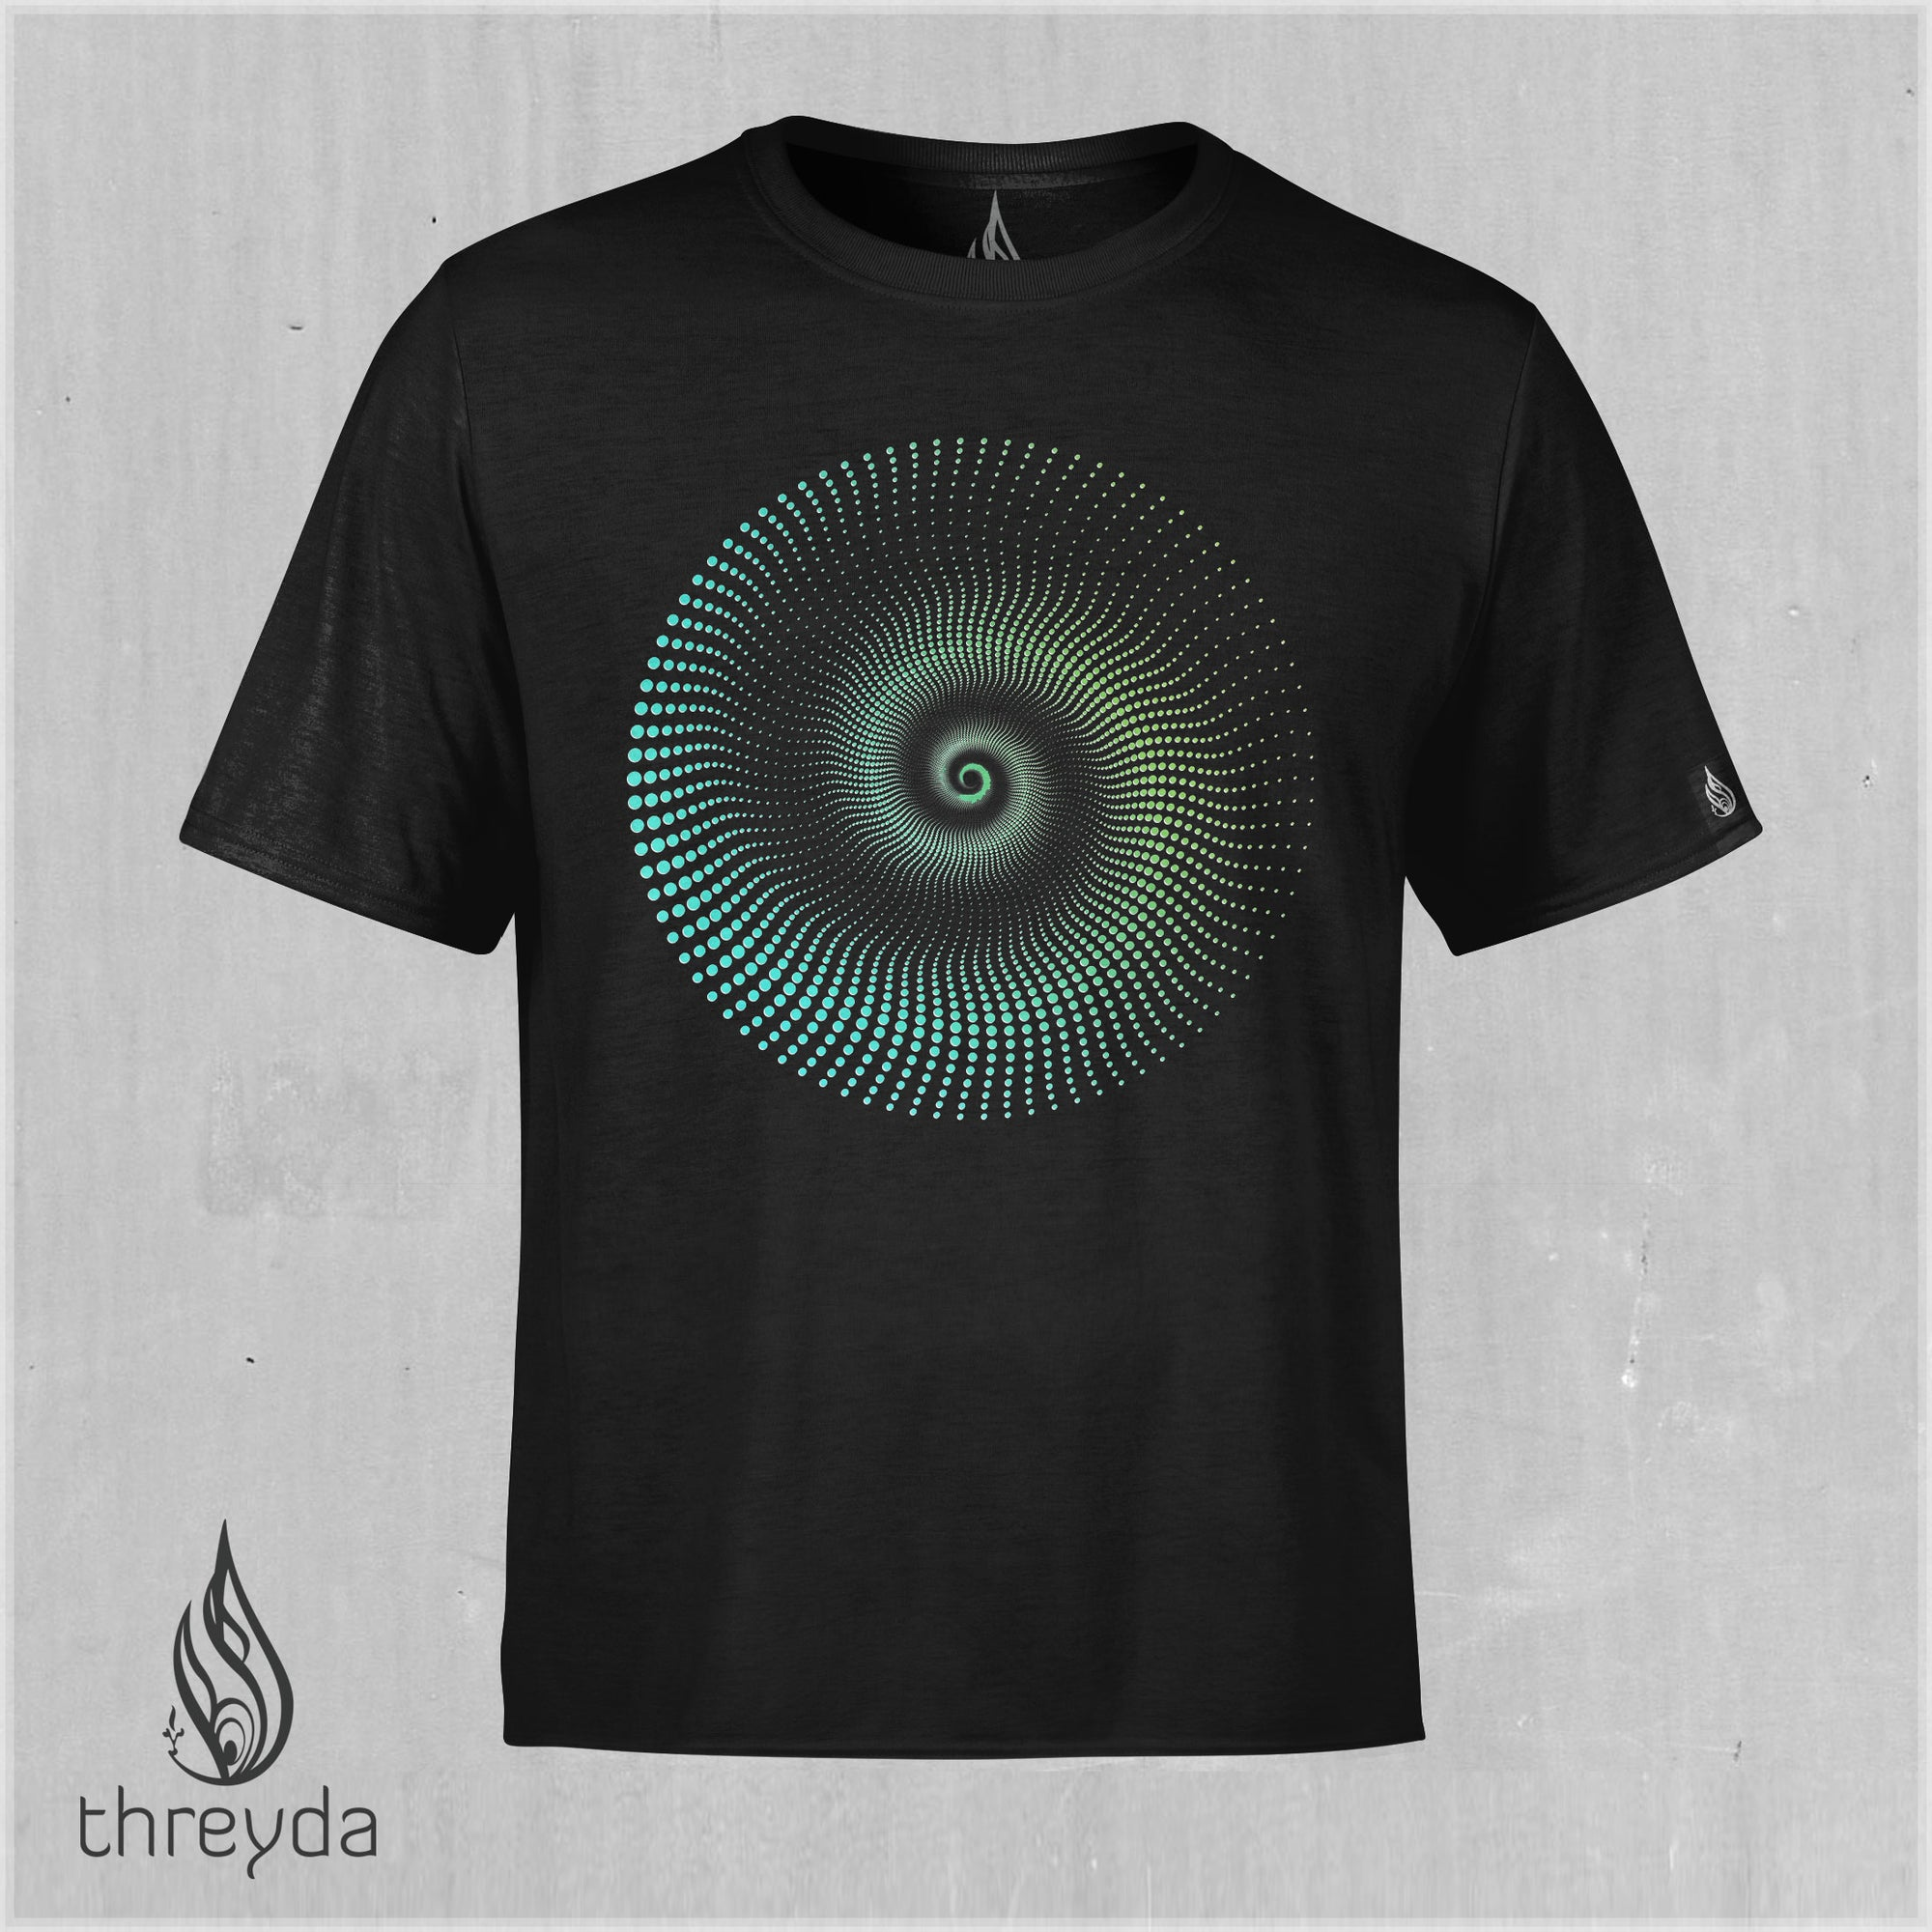 Haedron Color Shifting Cotton Tee by Threyda - Ships April 2020